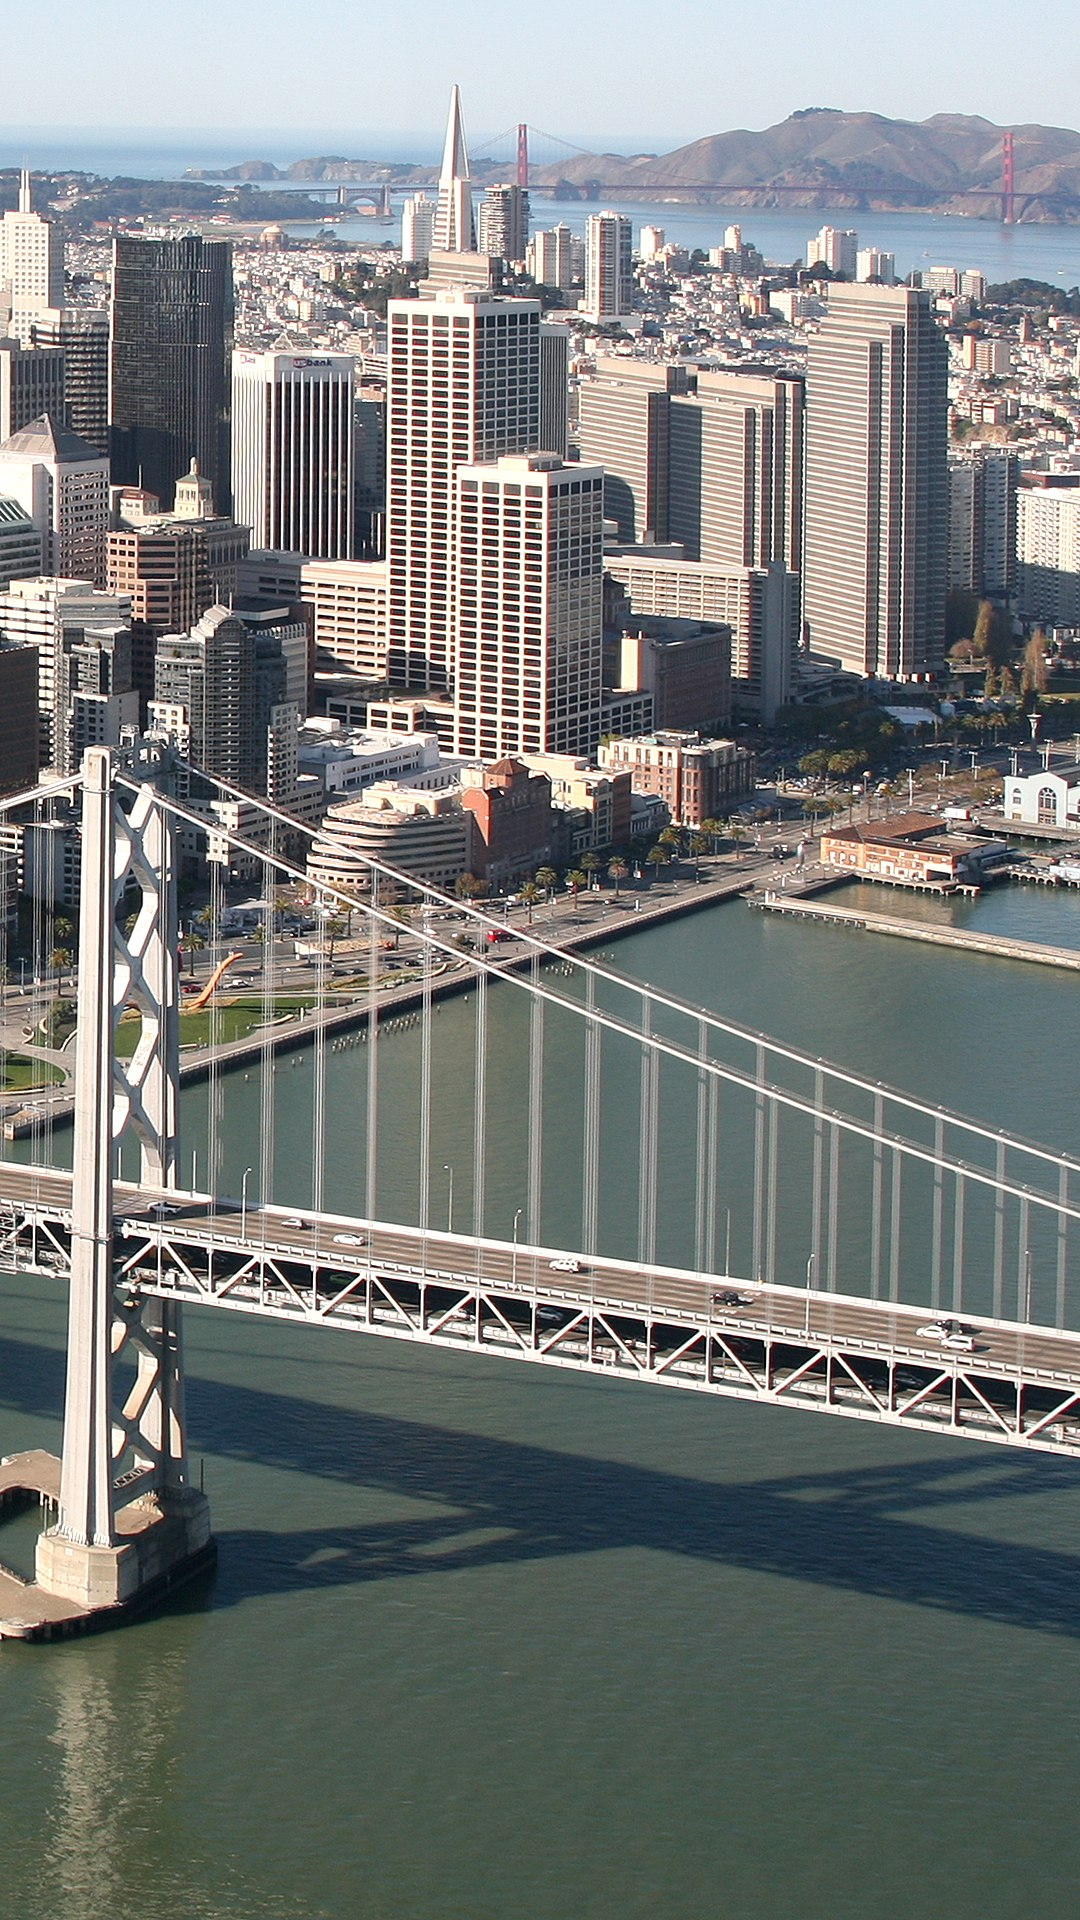 San Francisco and the Bay Bridge photographed in December of 2011 ...